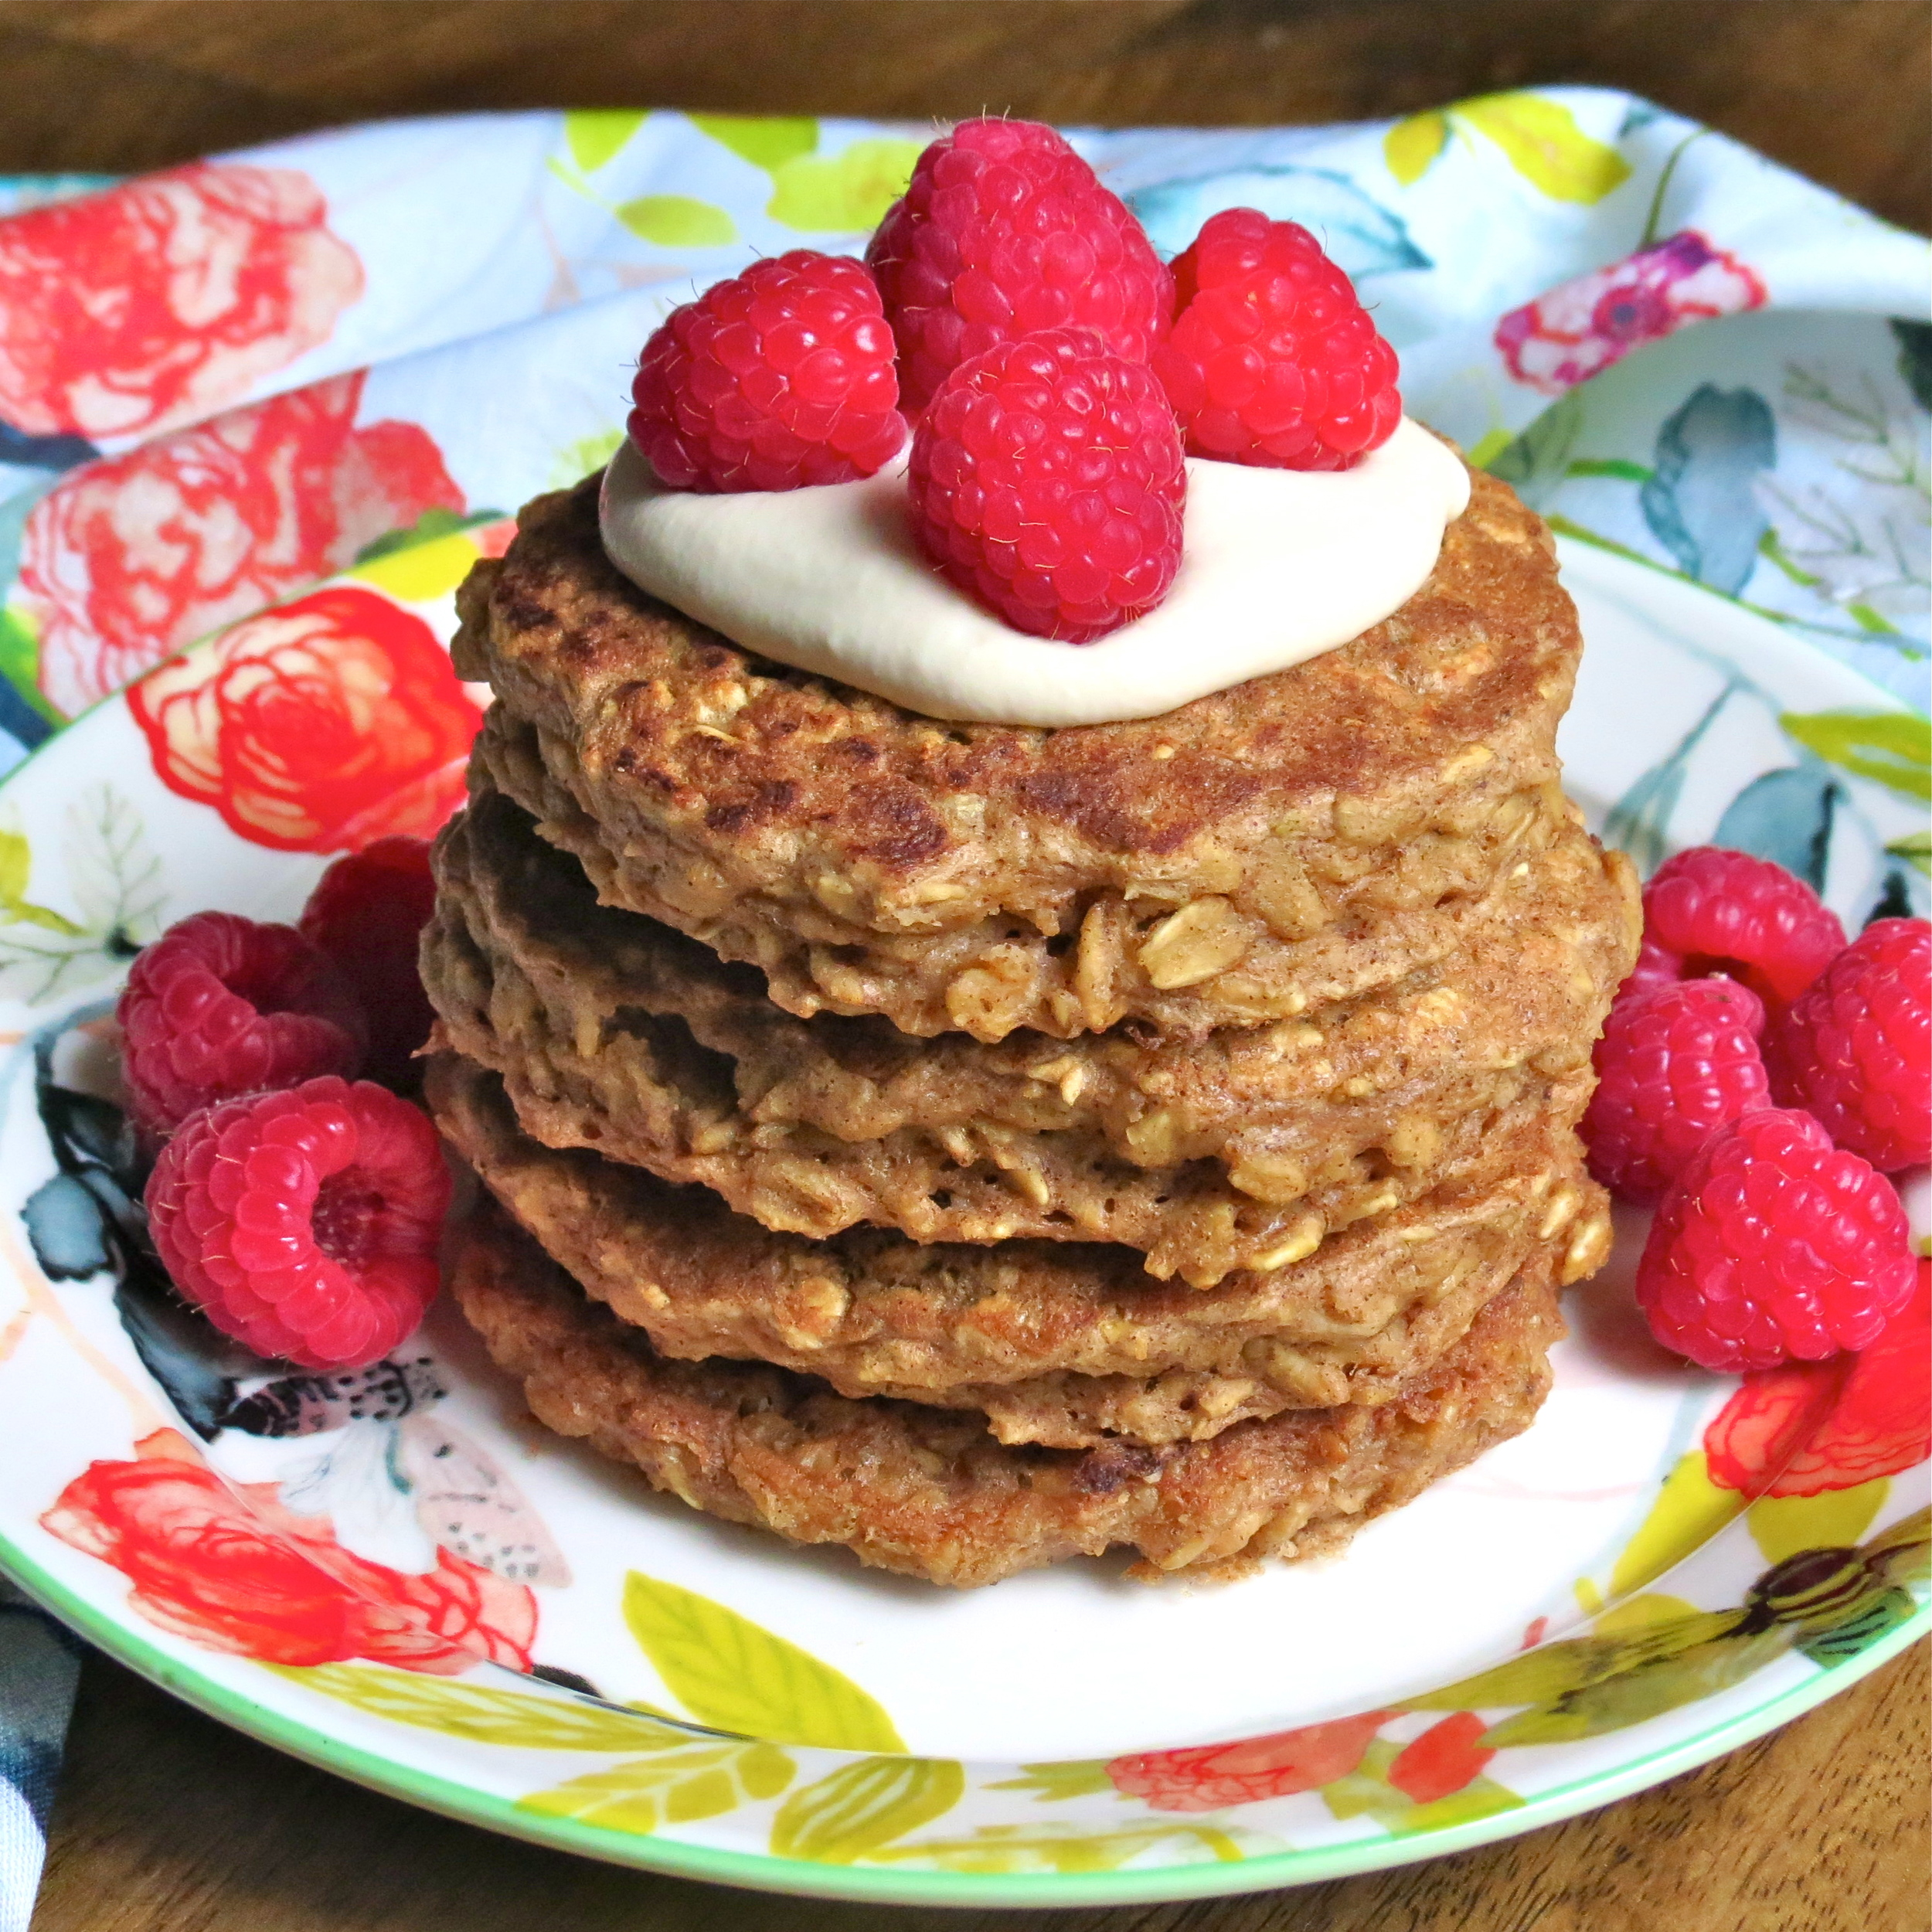 And now with some sweet cashew cream and fresh raspberries!